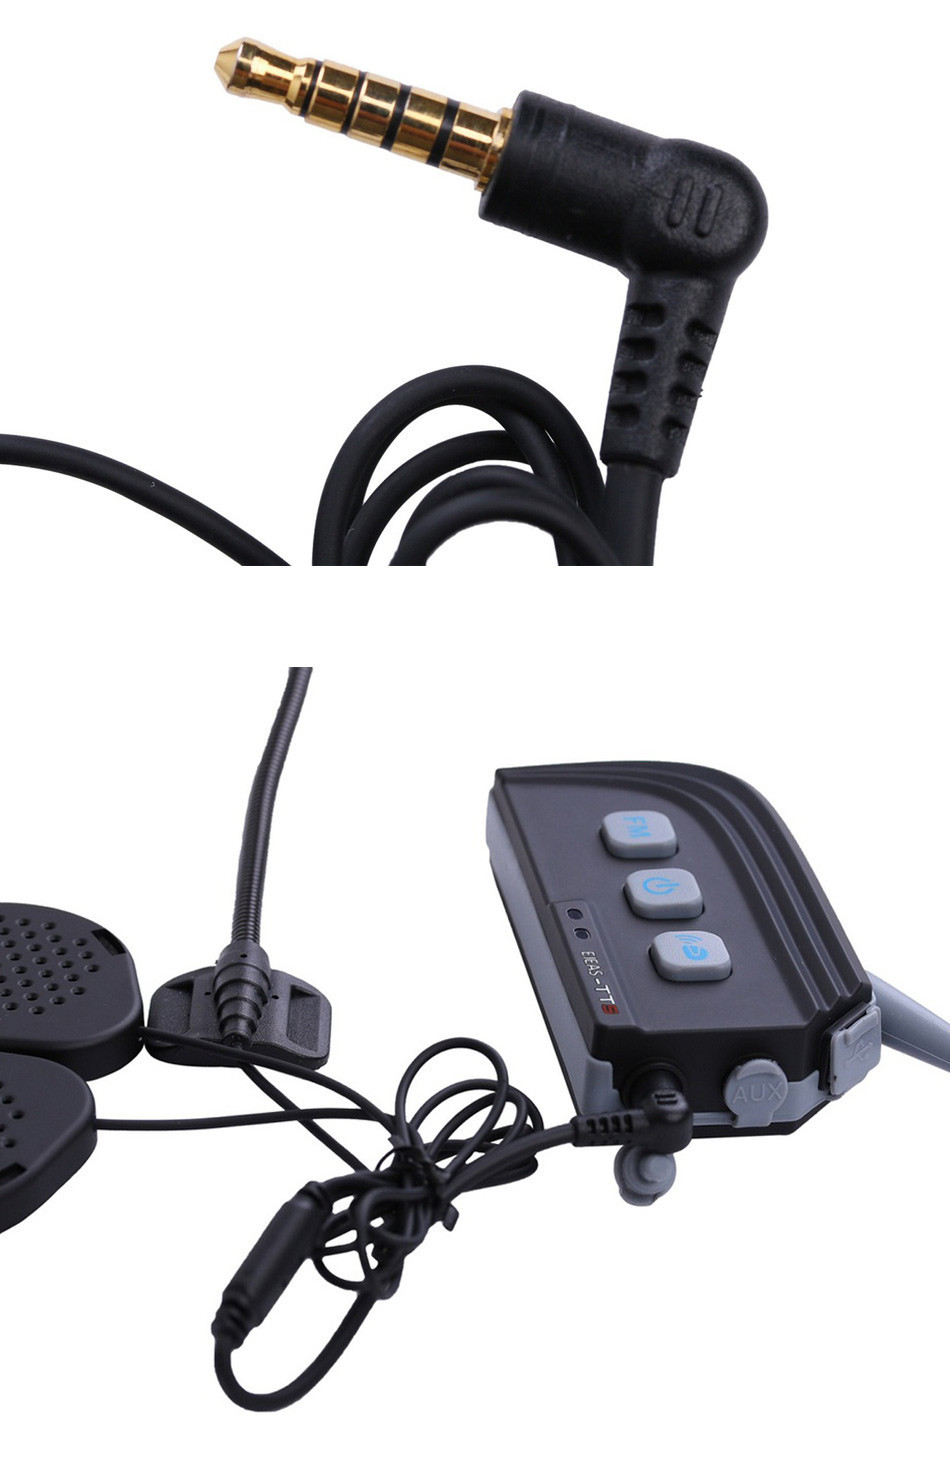 2PCS Motorcycle Dual Bluetooth Helmet Intercom BT Headset Wireless Interphone For 4 Riders 1500M Real Time Moto Communication03